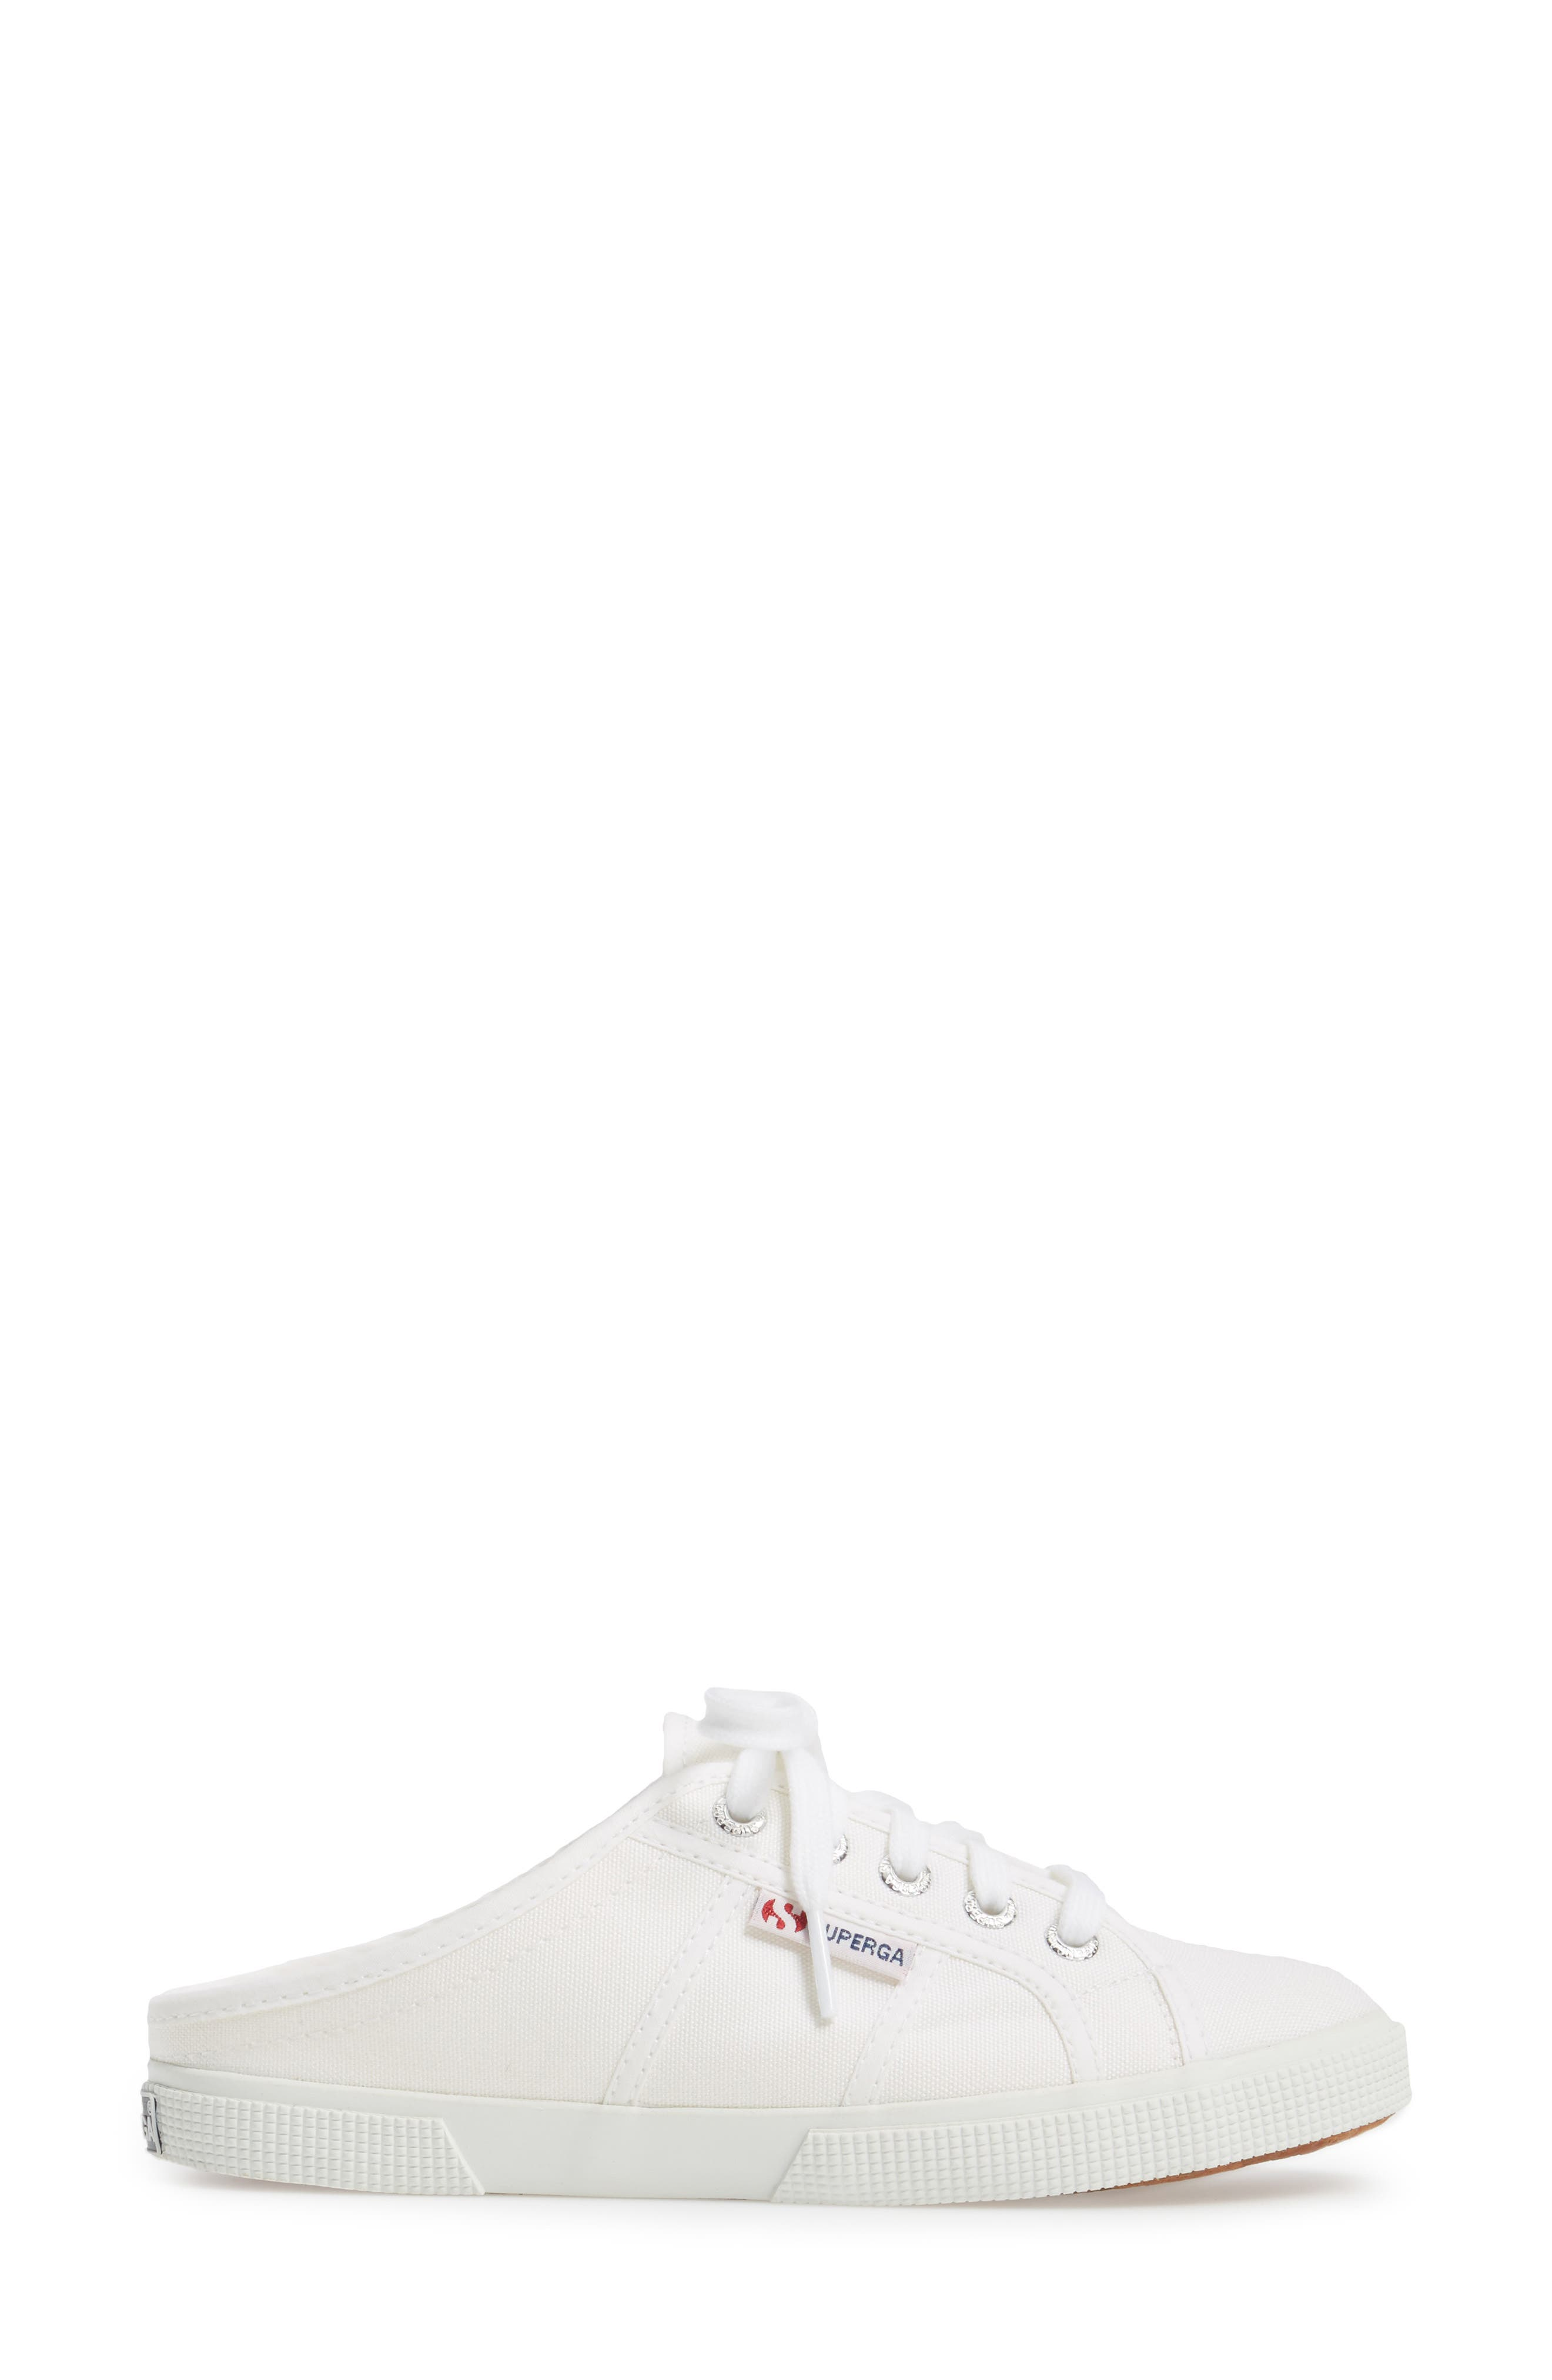 Alternate Image 3  - Superga 2288 Sneaker Mule (Women)